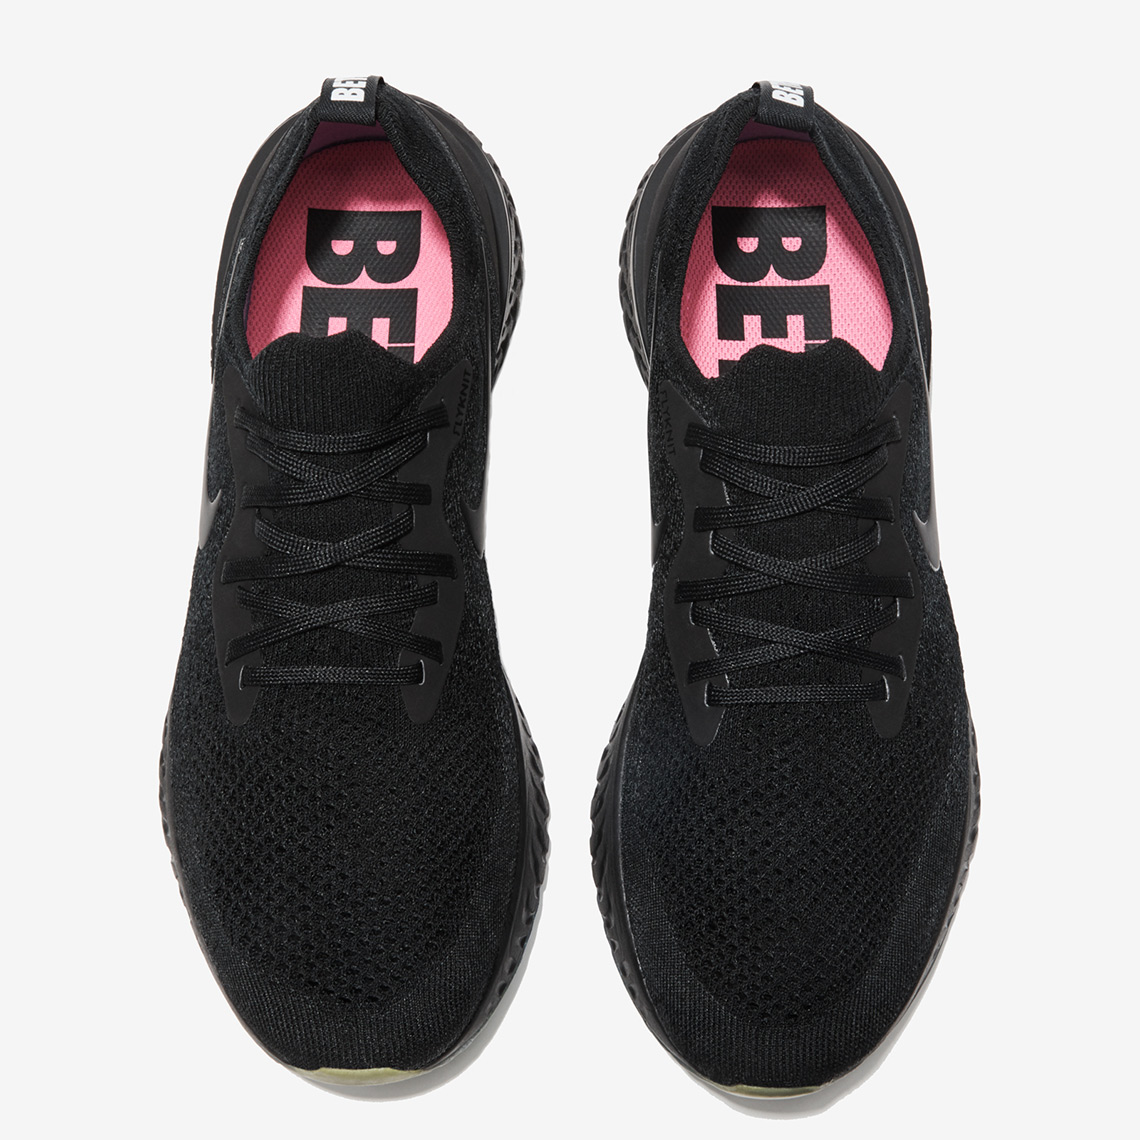 9e46631c3d93 NIke Epic React BE TRUE AR3772-001